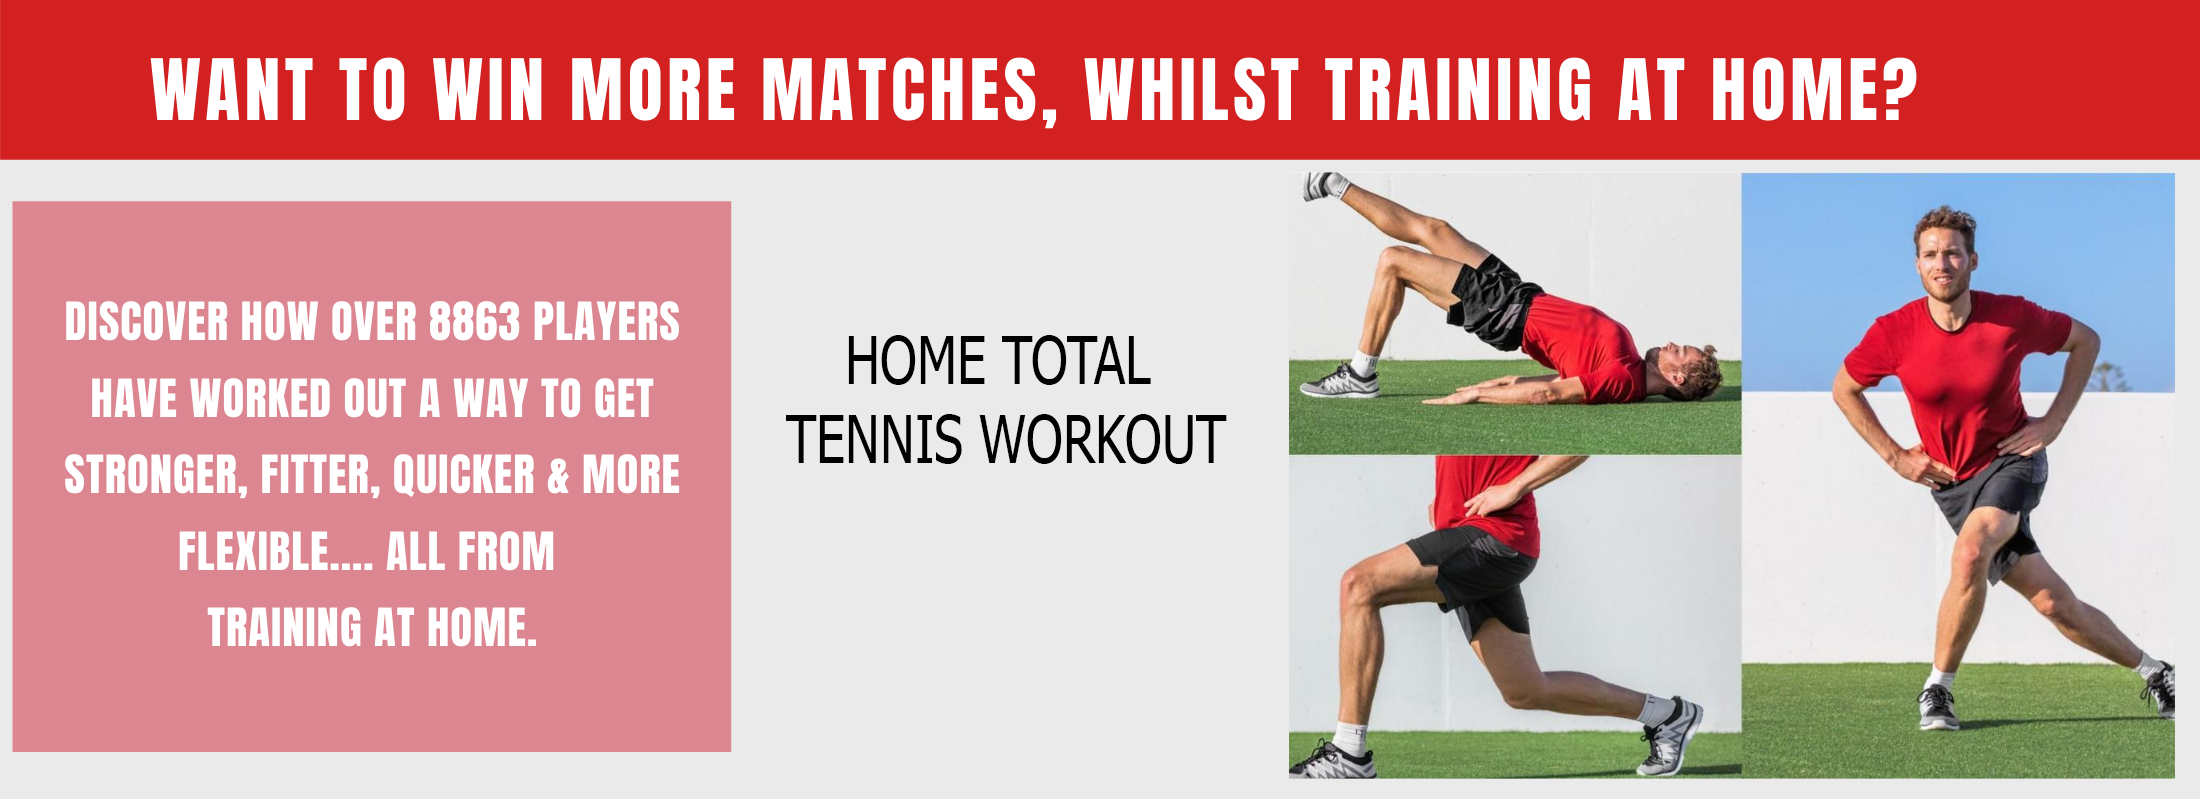 Home Tennis Workouts